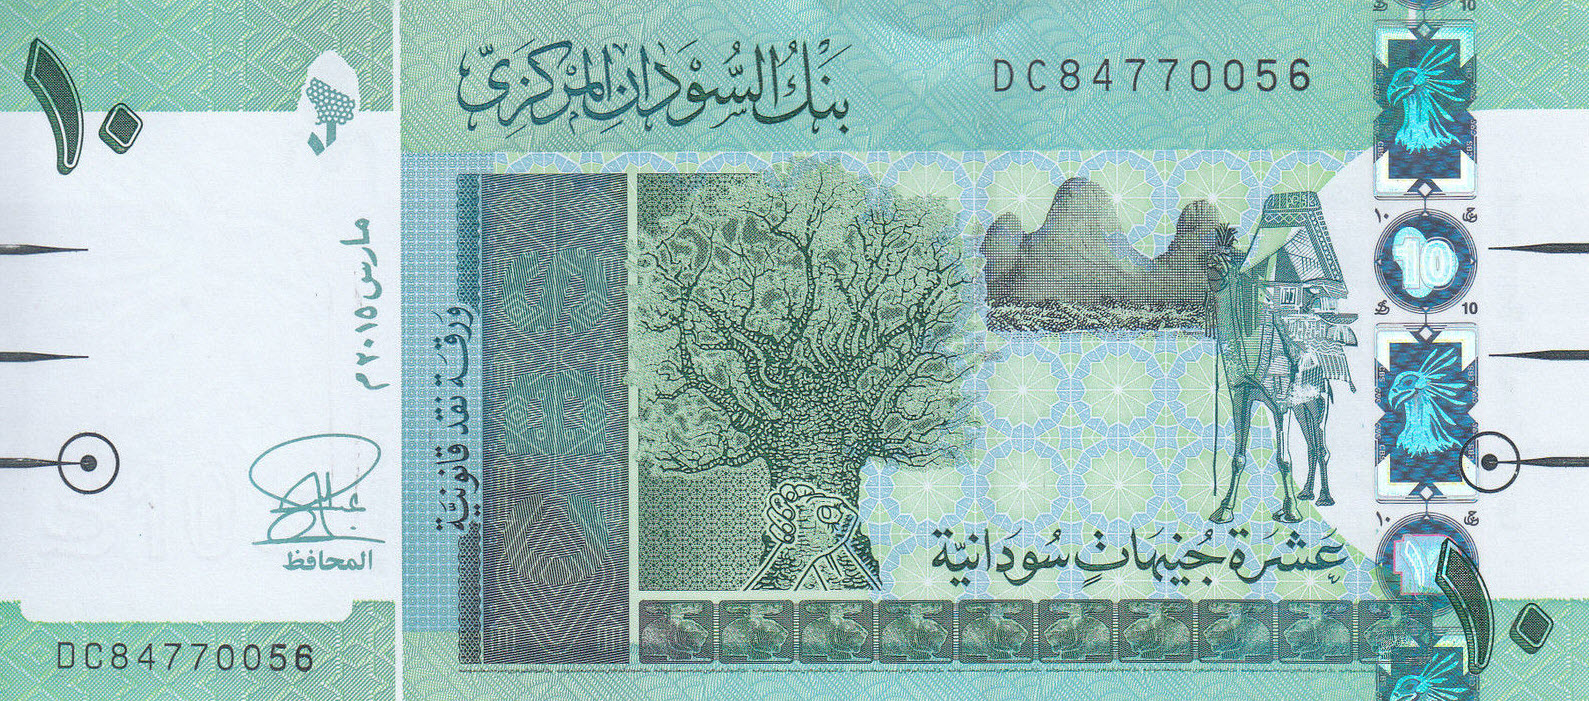 (506) Sudan P73b - 10 Pounds Year 2015